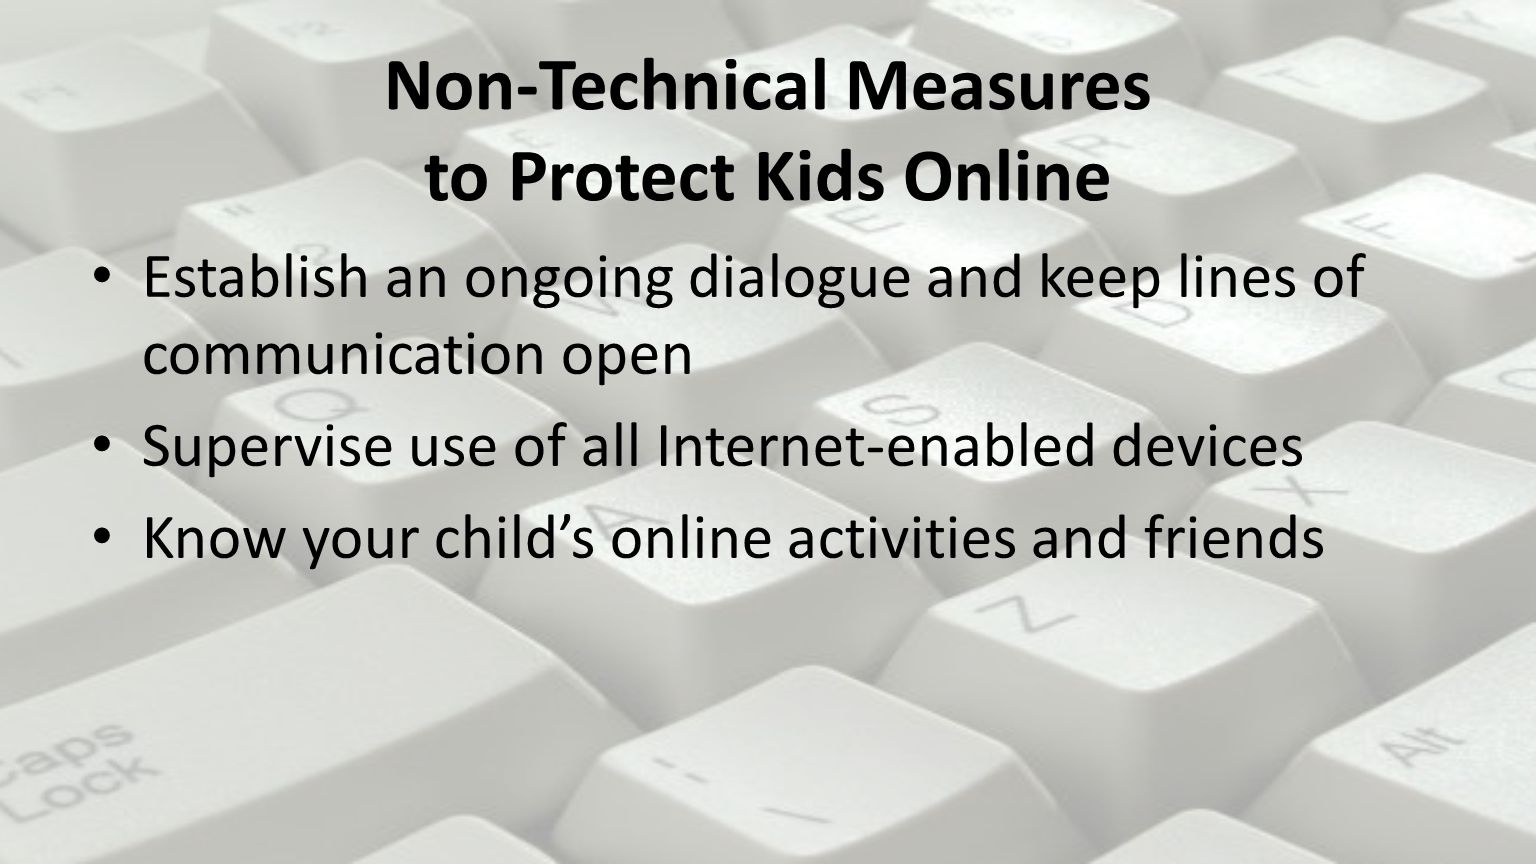 Establish an ongoing dialogue and keep lines of communication open Supervise use of all Internet-enabled devices Know your child's online activities and friends